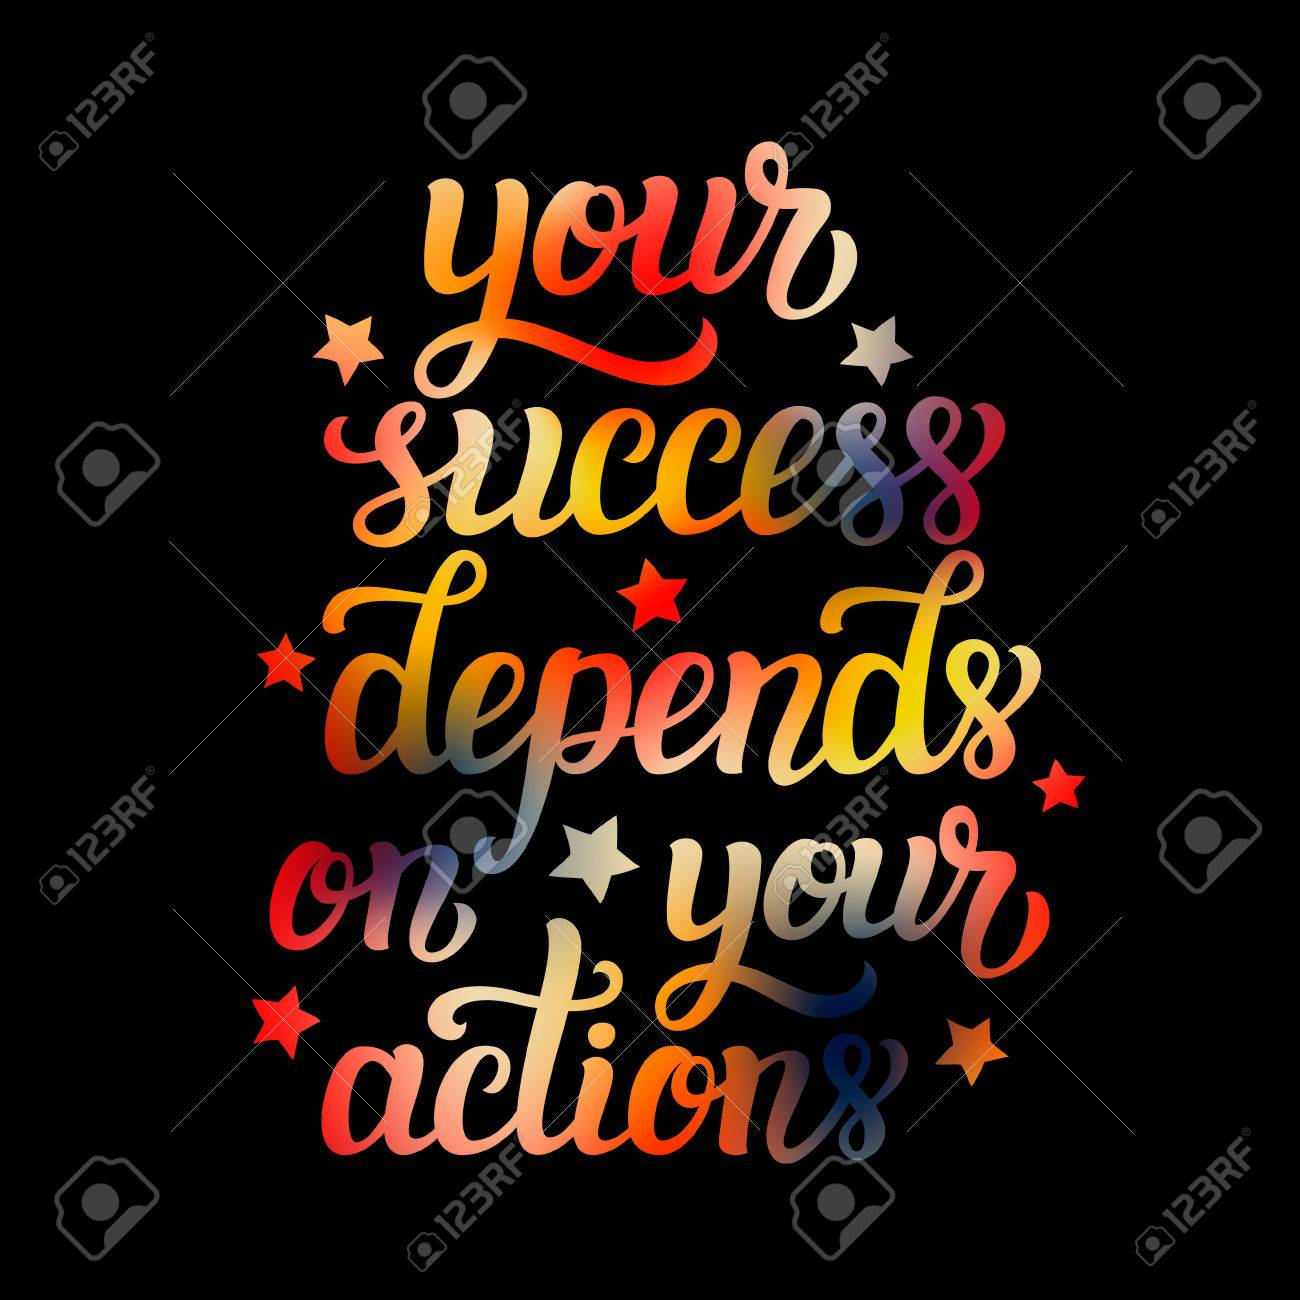 Image result for design your actions